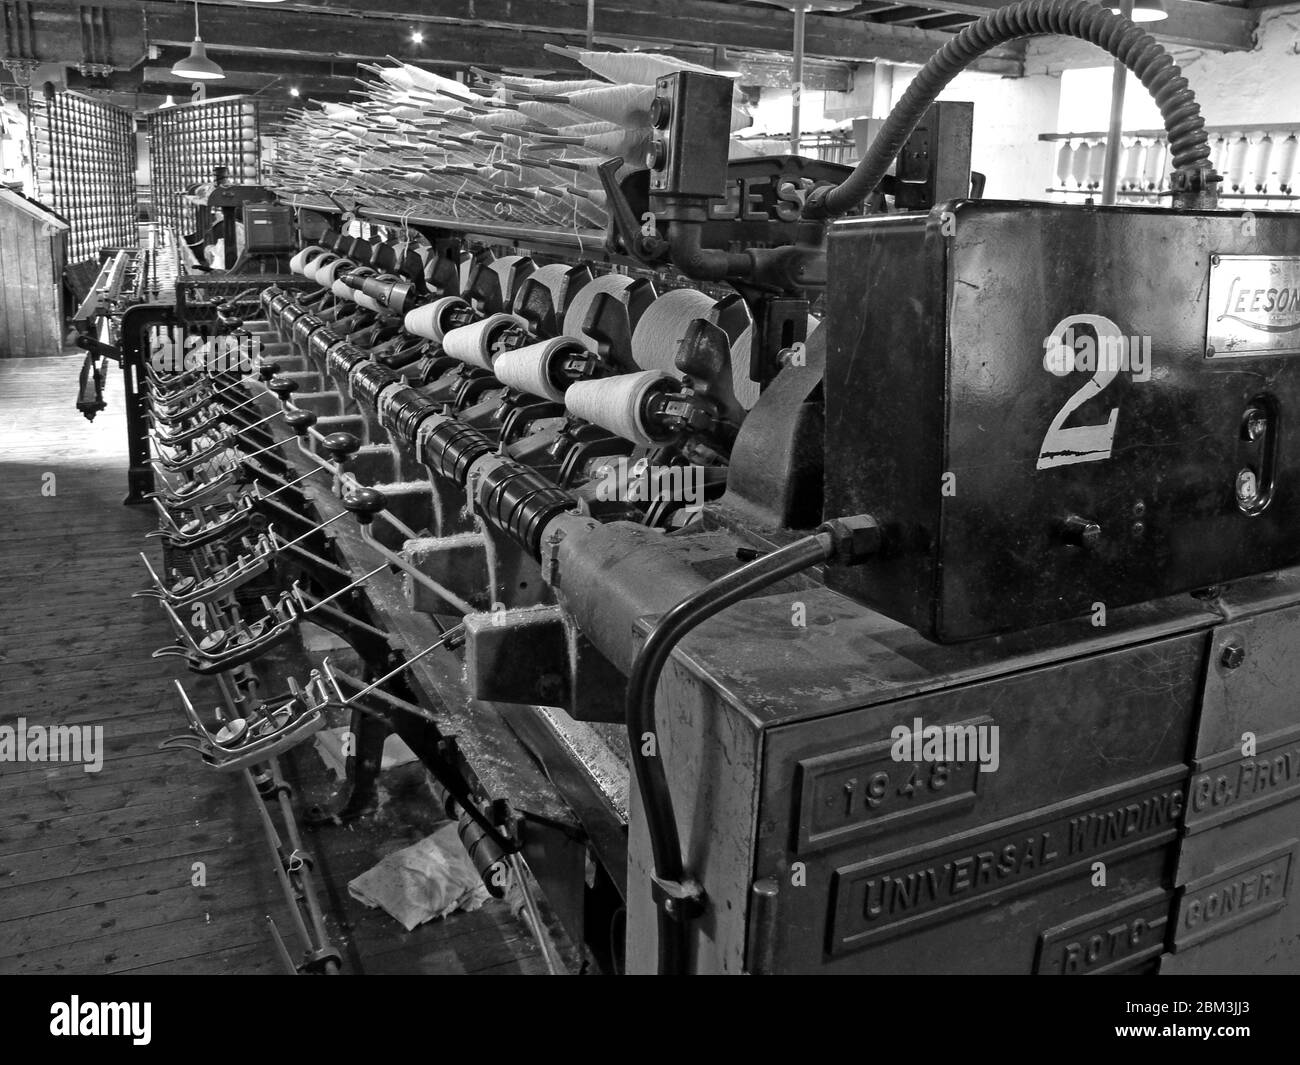 GoTonySmith,HotpixUK,@HotpixUK,Manchester,industry,factory,mill,history,machines,cloth,manufacture,Lancashire,Victorian,mass production,Industrial Revolution,Textile manufacturing,Manchester factory,manufacturing cotton and cloth,cotton yarn,Cotton Mill,Cottonopolis,Inside a Manchester Cotton Mill,1948 Roto-Coner machine,Roto-Coner,RotoConer machine,machine,Roto-Coner machine,1948